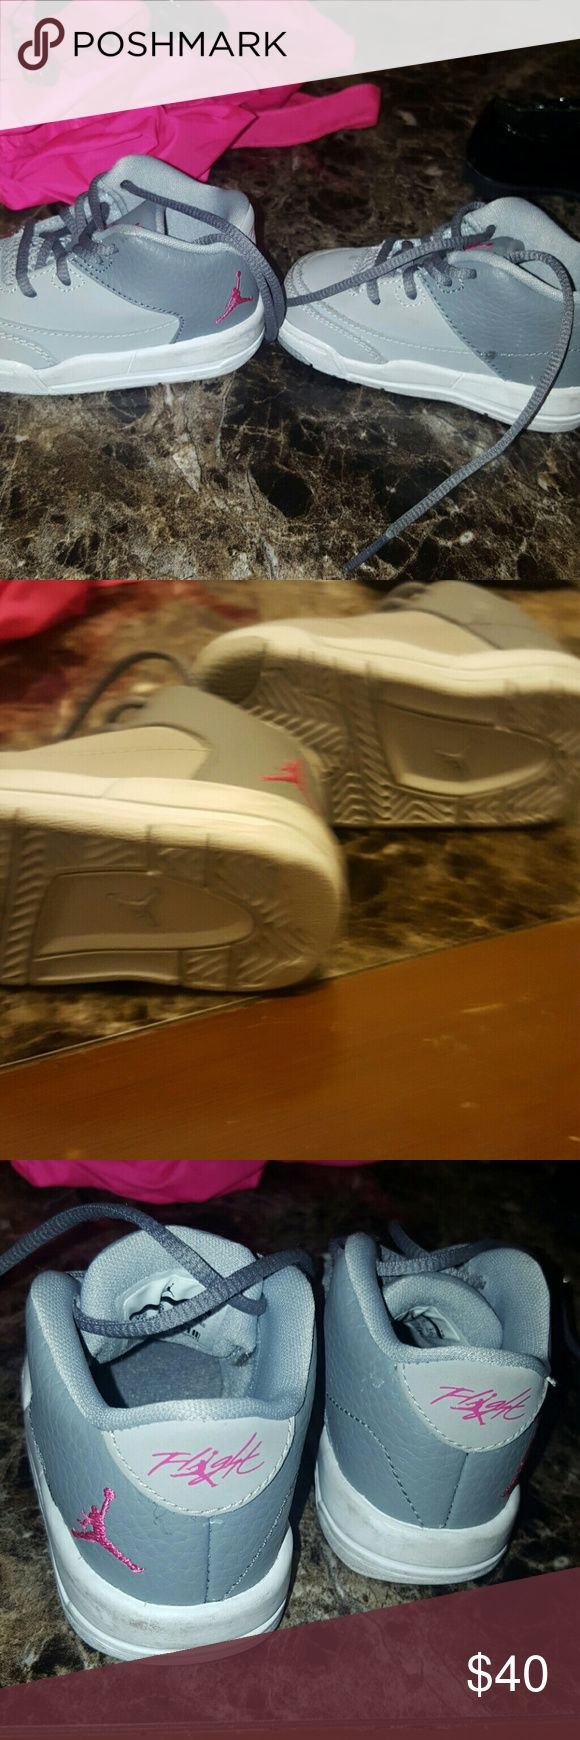 Pink grey tennis shoes infant size 4c Pink grey tennis shoes infant size 4c Jordan Shoes Sneakers